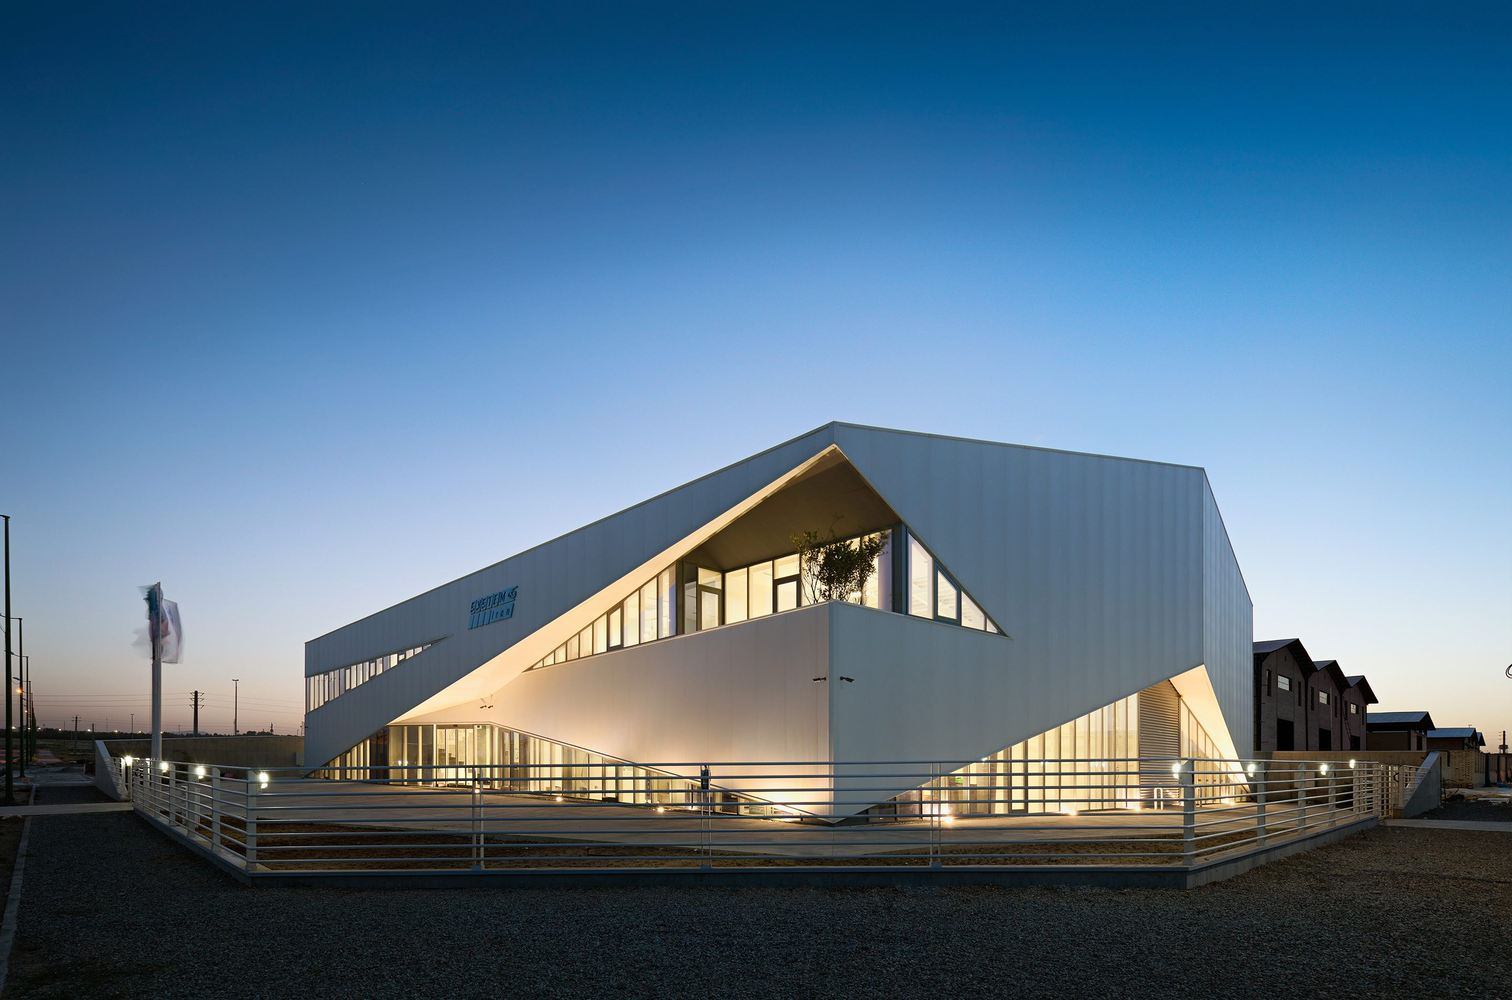 8_System Warehouse_Olgooco Architecture_Inspirationist